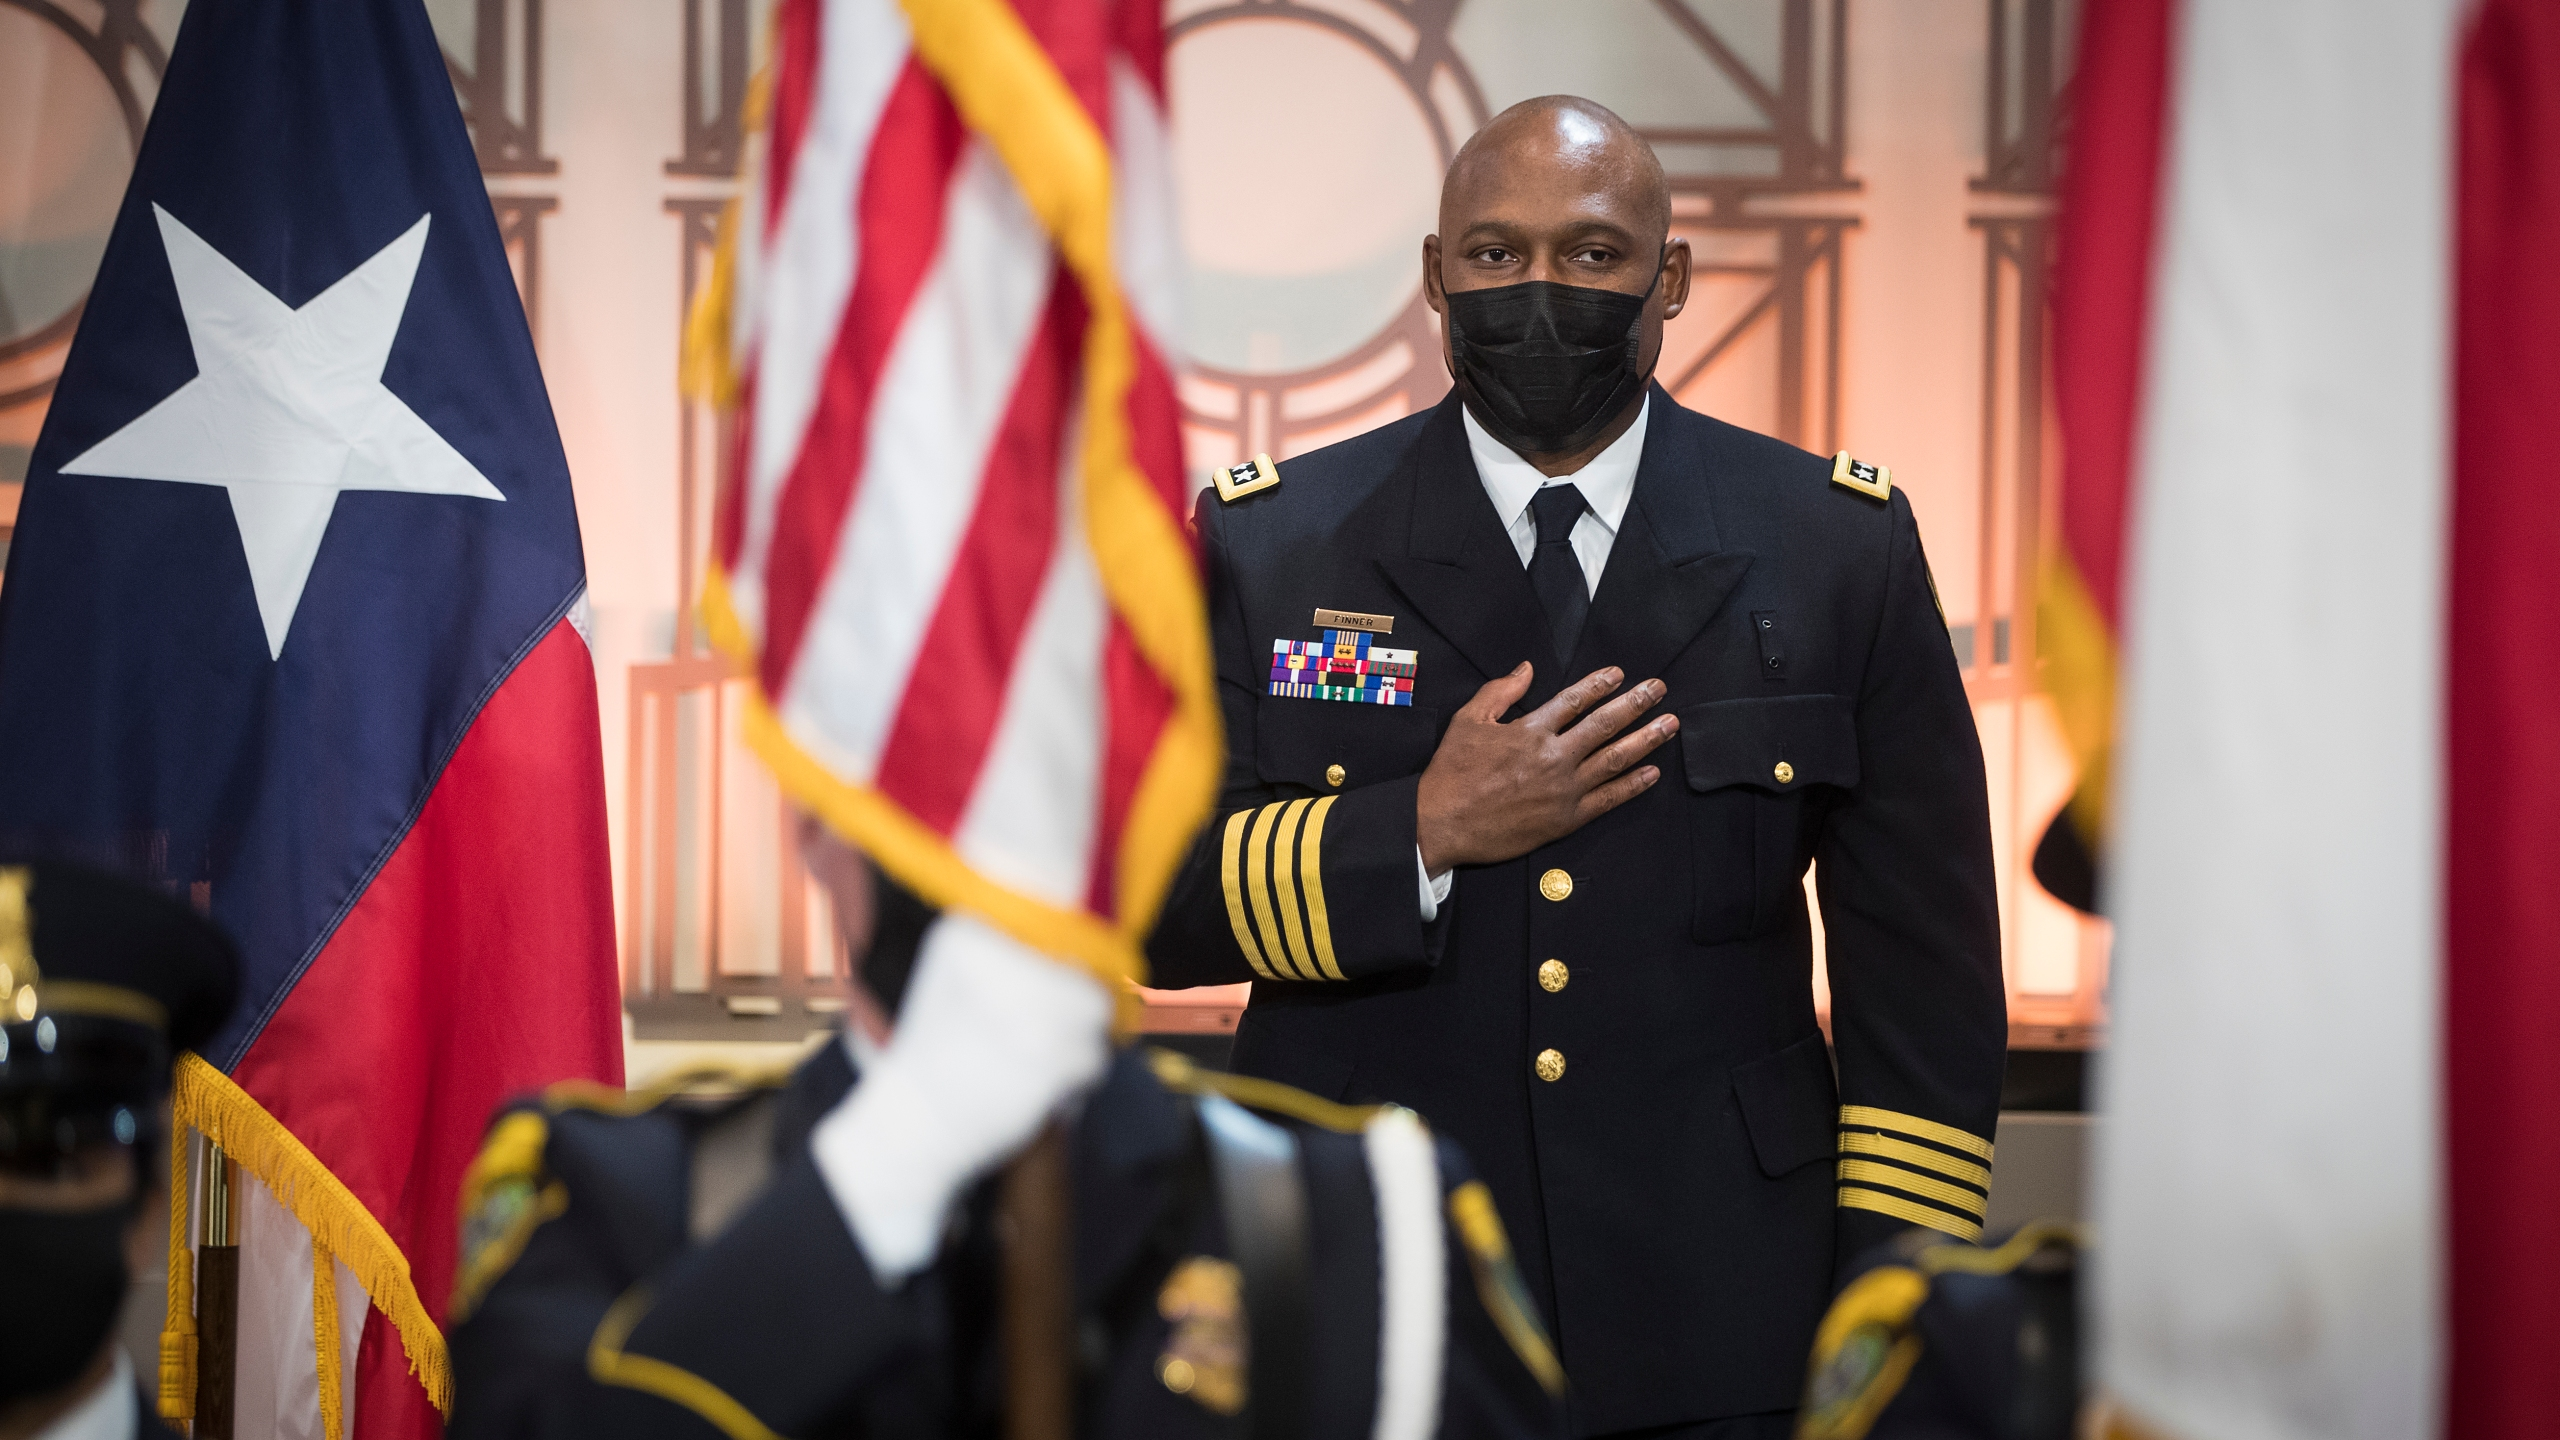 In this April 5, 2021, file photo, Houston Police Chief New Houston Police Chief Troy Finner stands for the national anthem before being sworn in as HPD's newest leader at City Hall in Houston. (Brett Coomer/Houston Chronicle via AP)